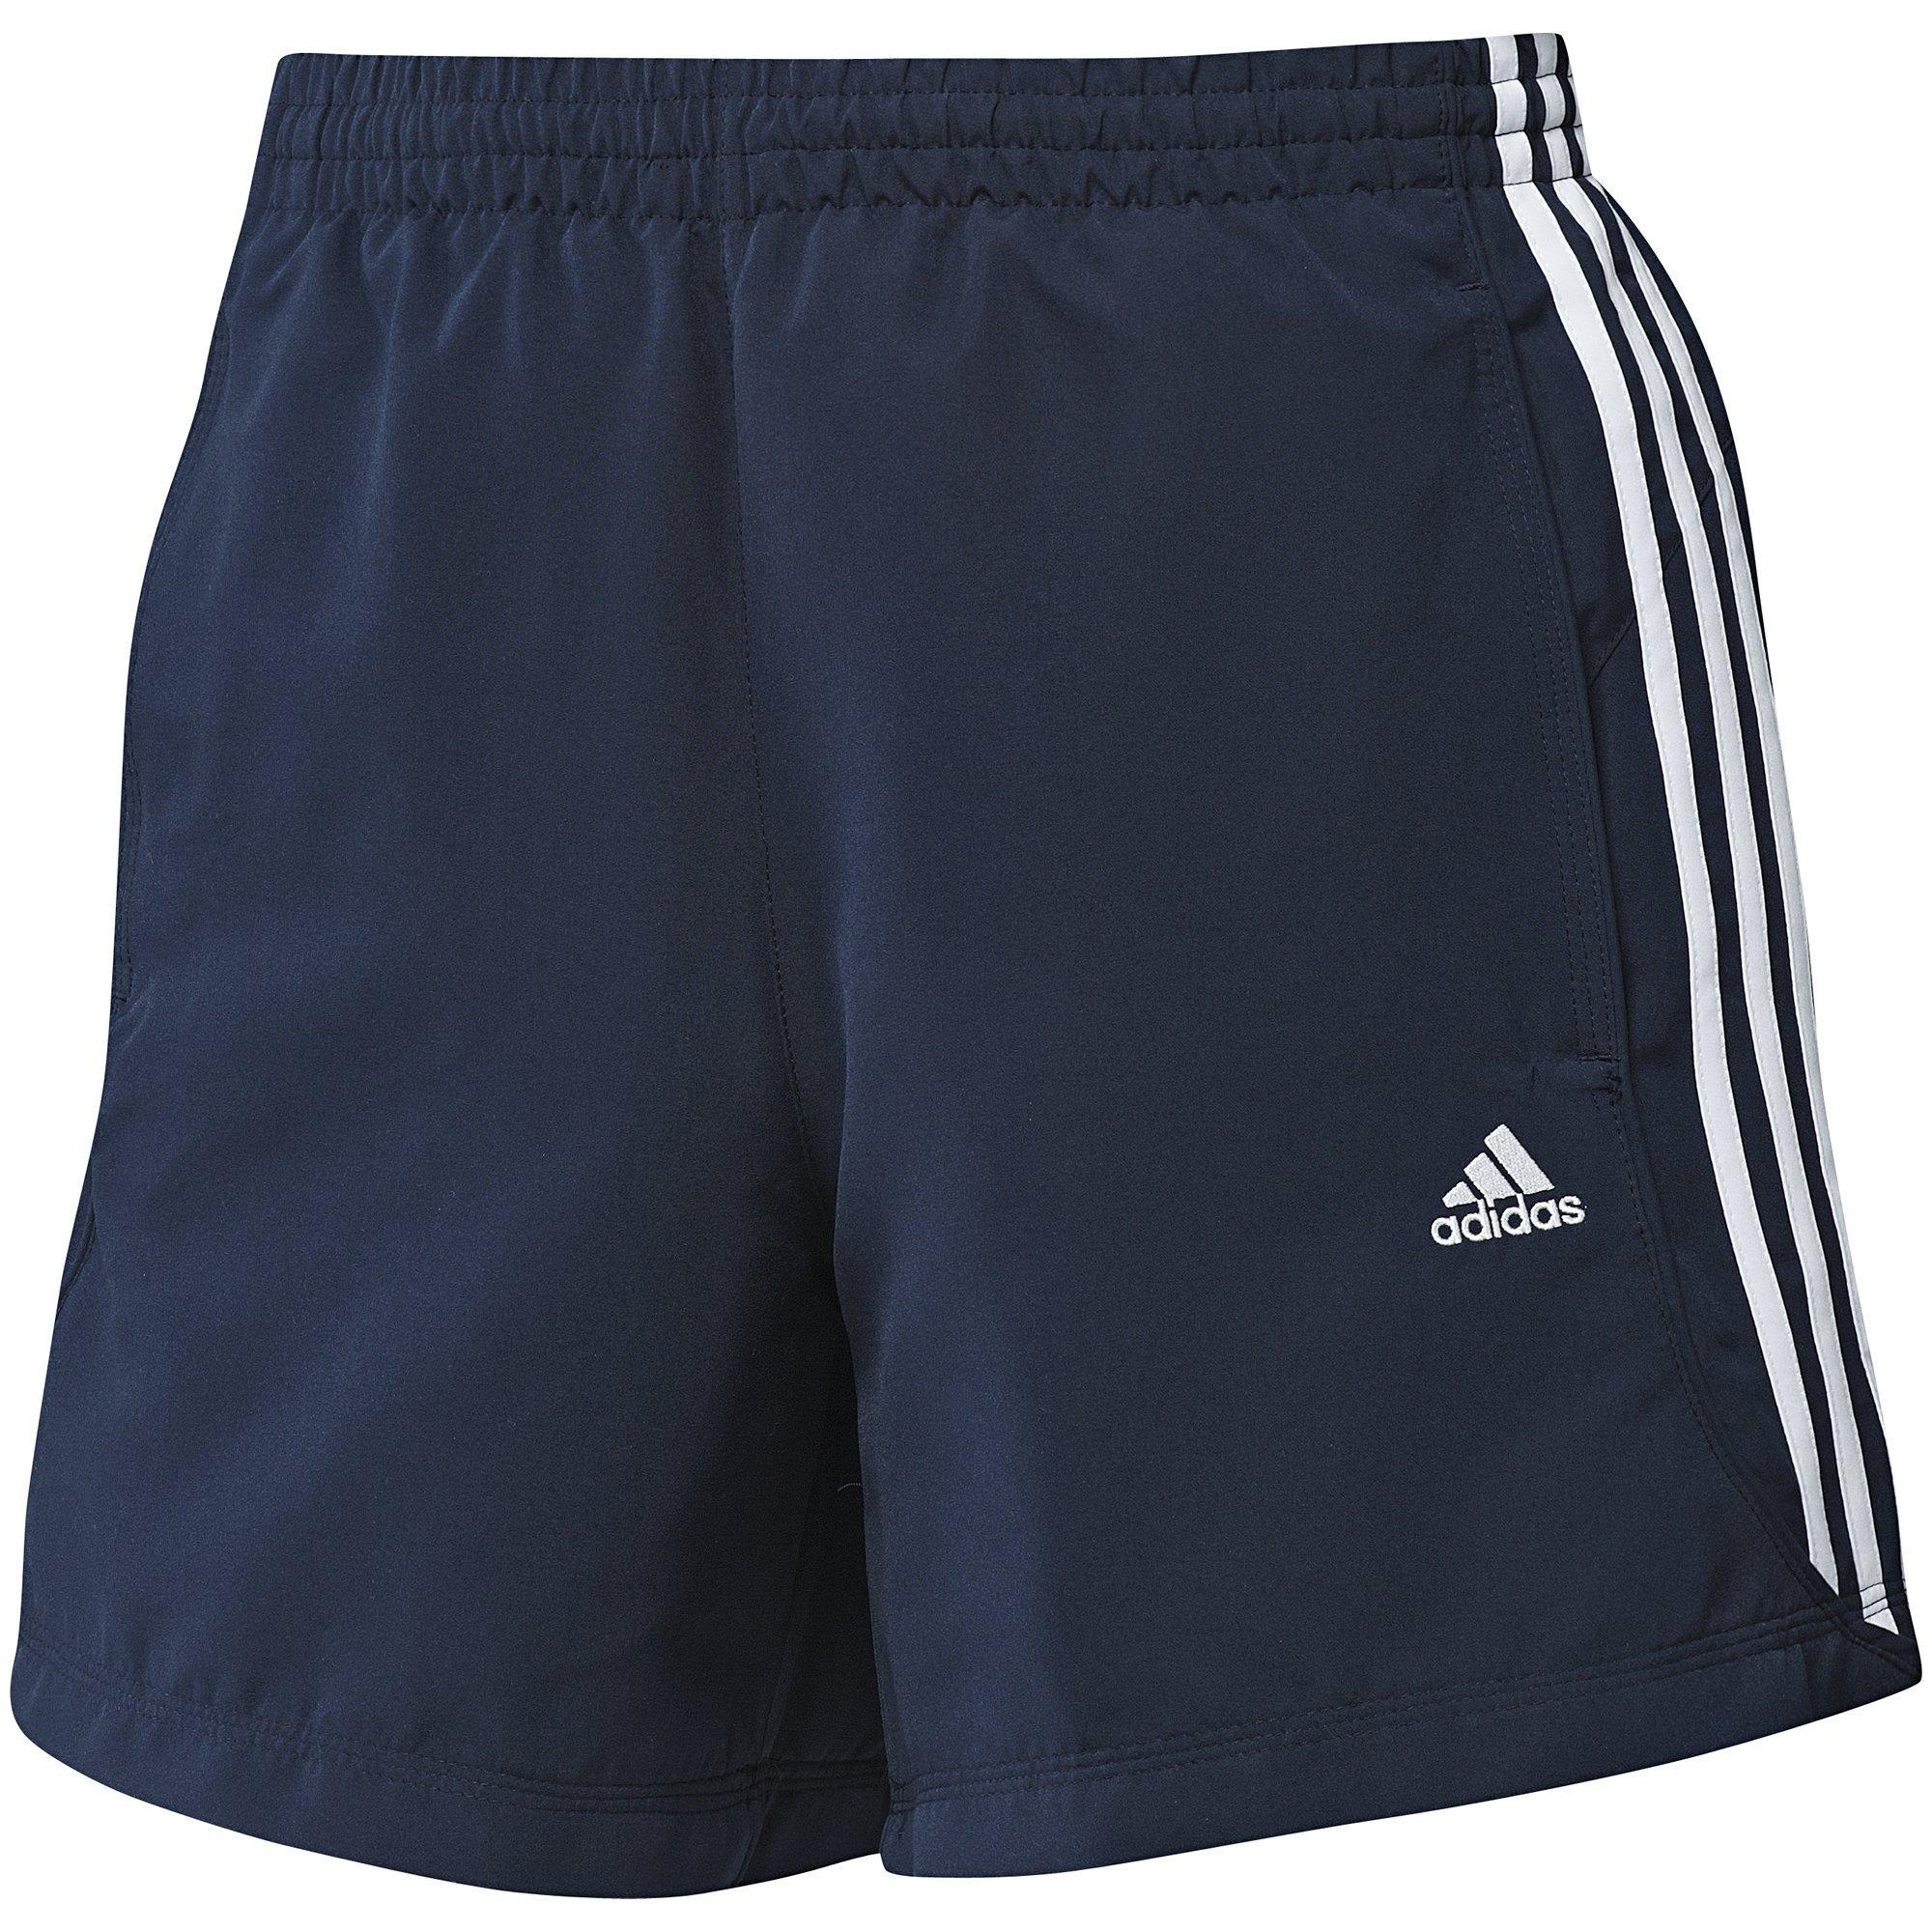 3 Shorts Essential Stripes Chelsea Adidas Mens Navywhite KJF3Tc1l